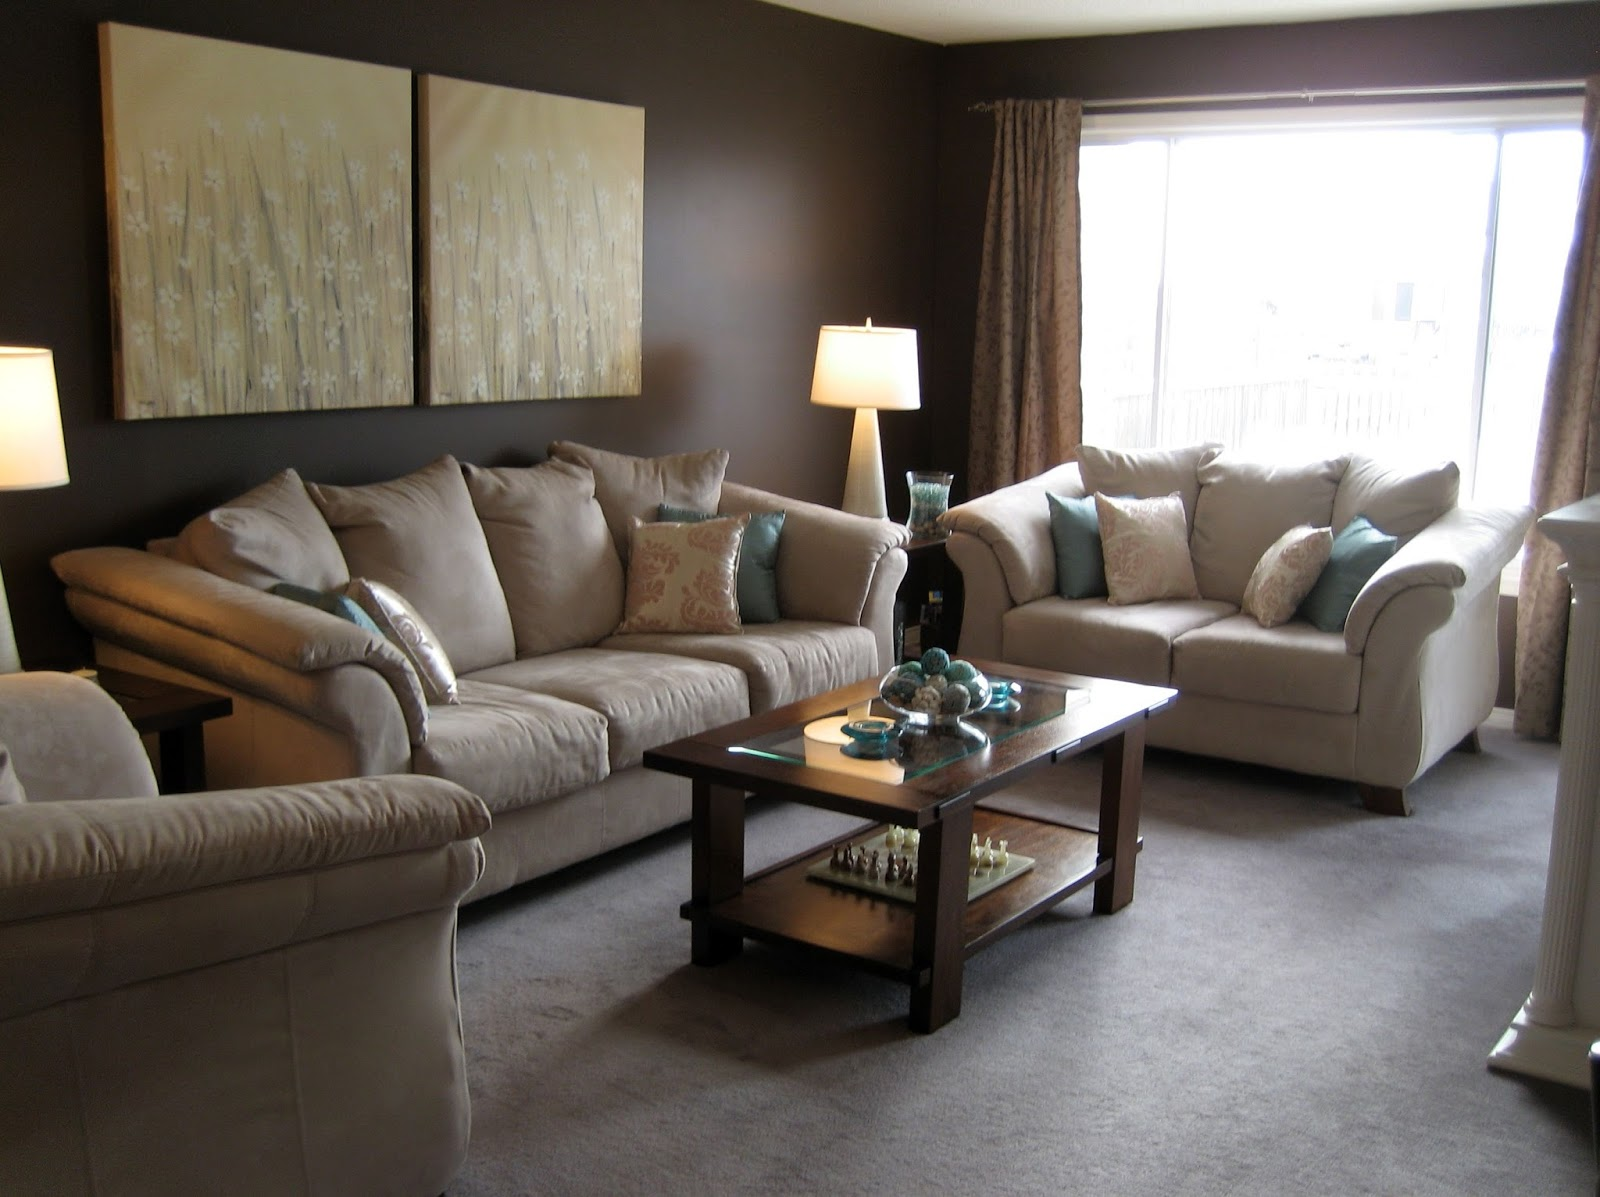 brown living room ideas decorating with modern furniture | home